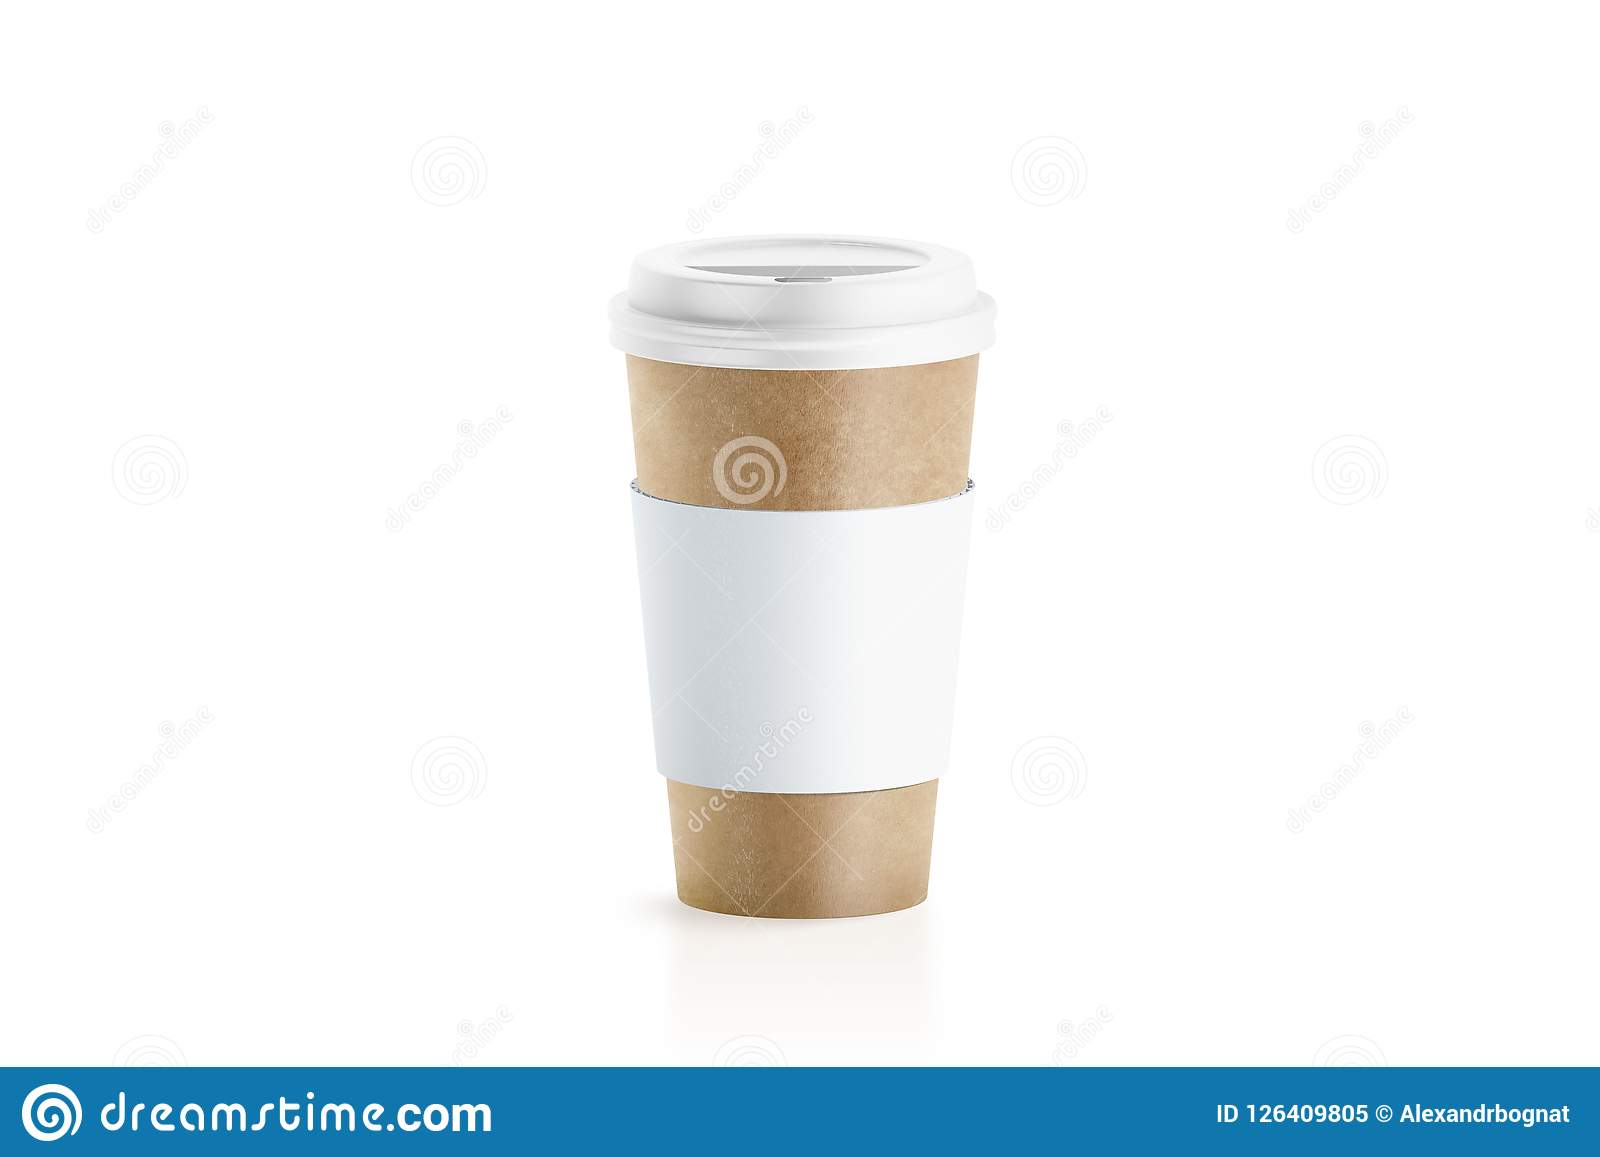 2abc4608786 Blank Craft Paper Cup With White Sleeve Holder Mockup Stock ...